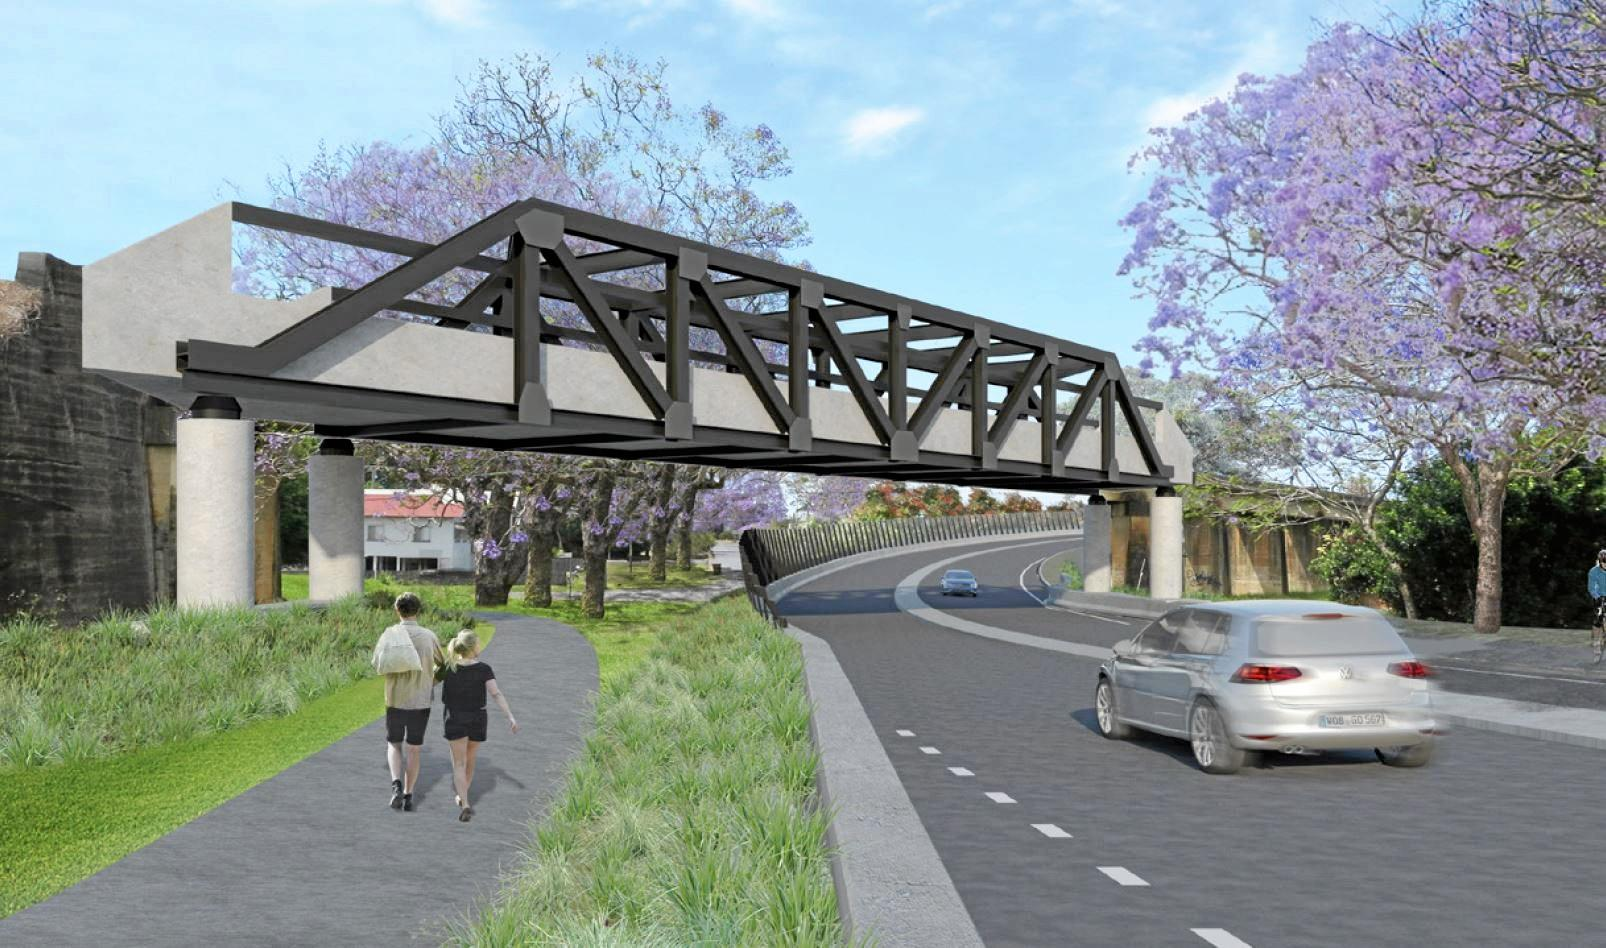 An artists impression of the new rail bridge over Pound Street on completion.